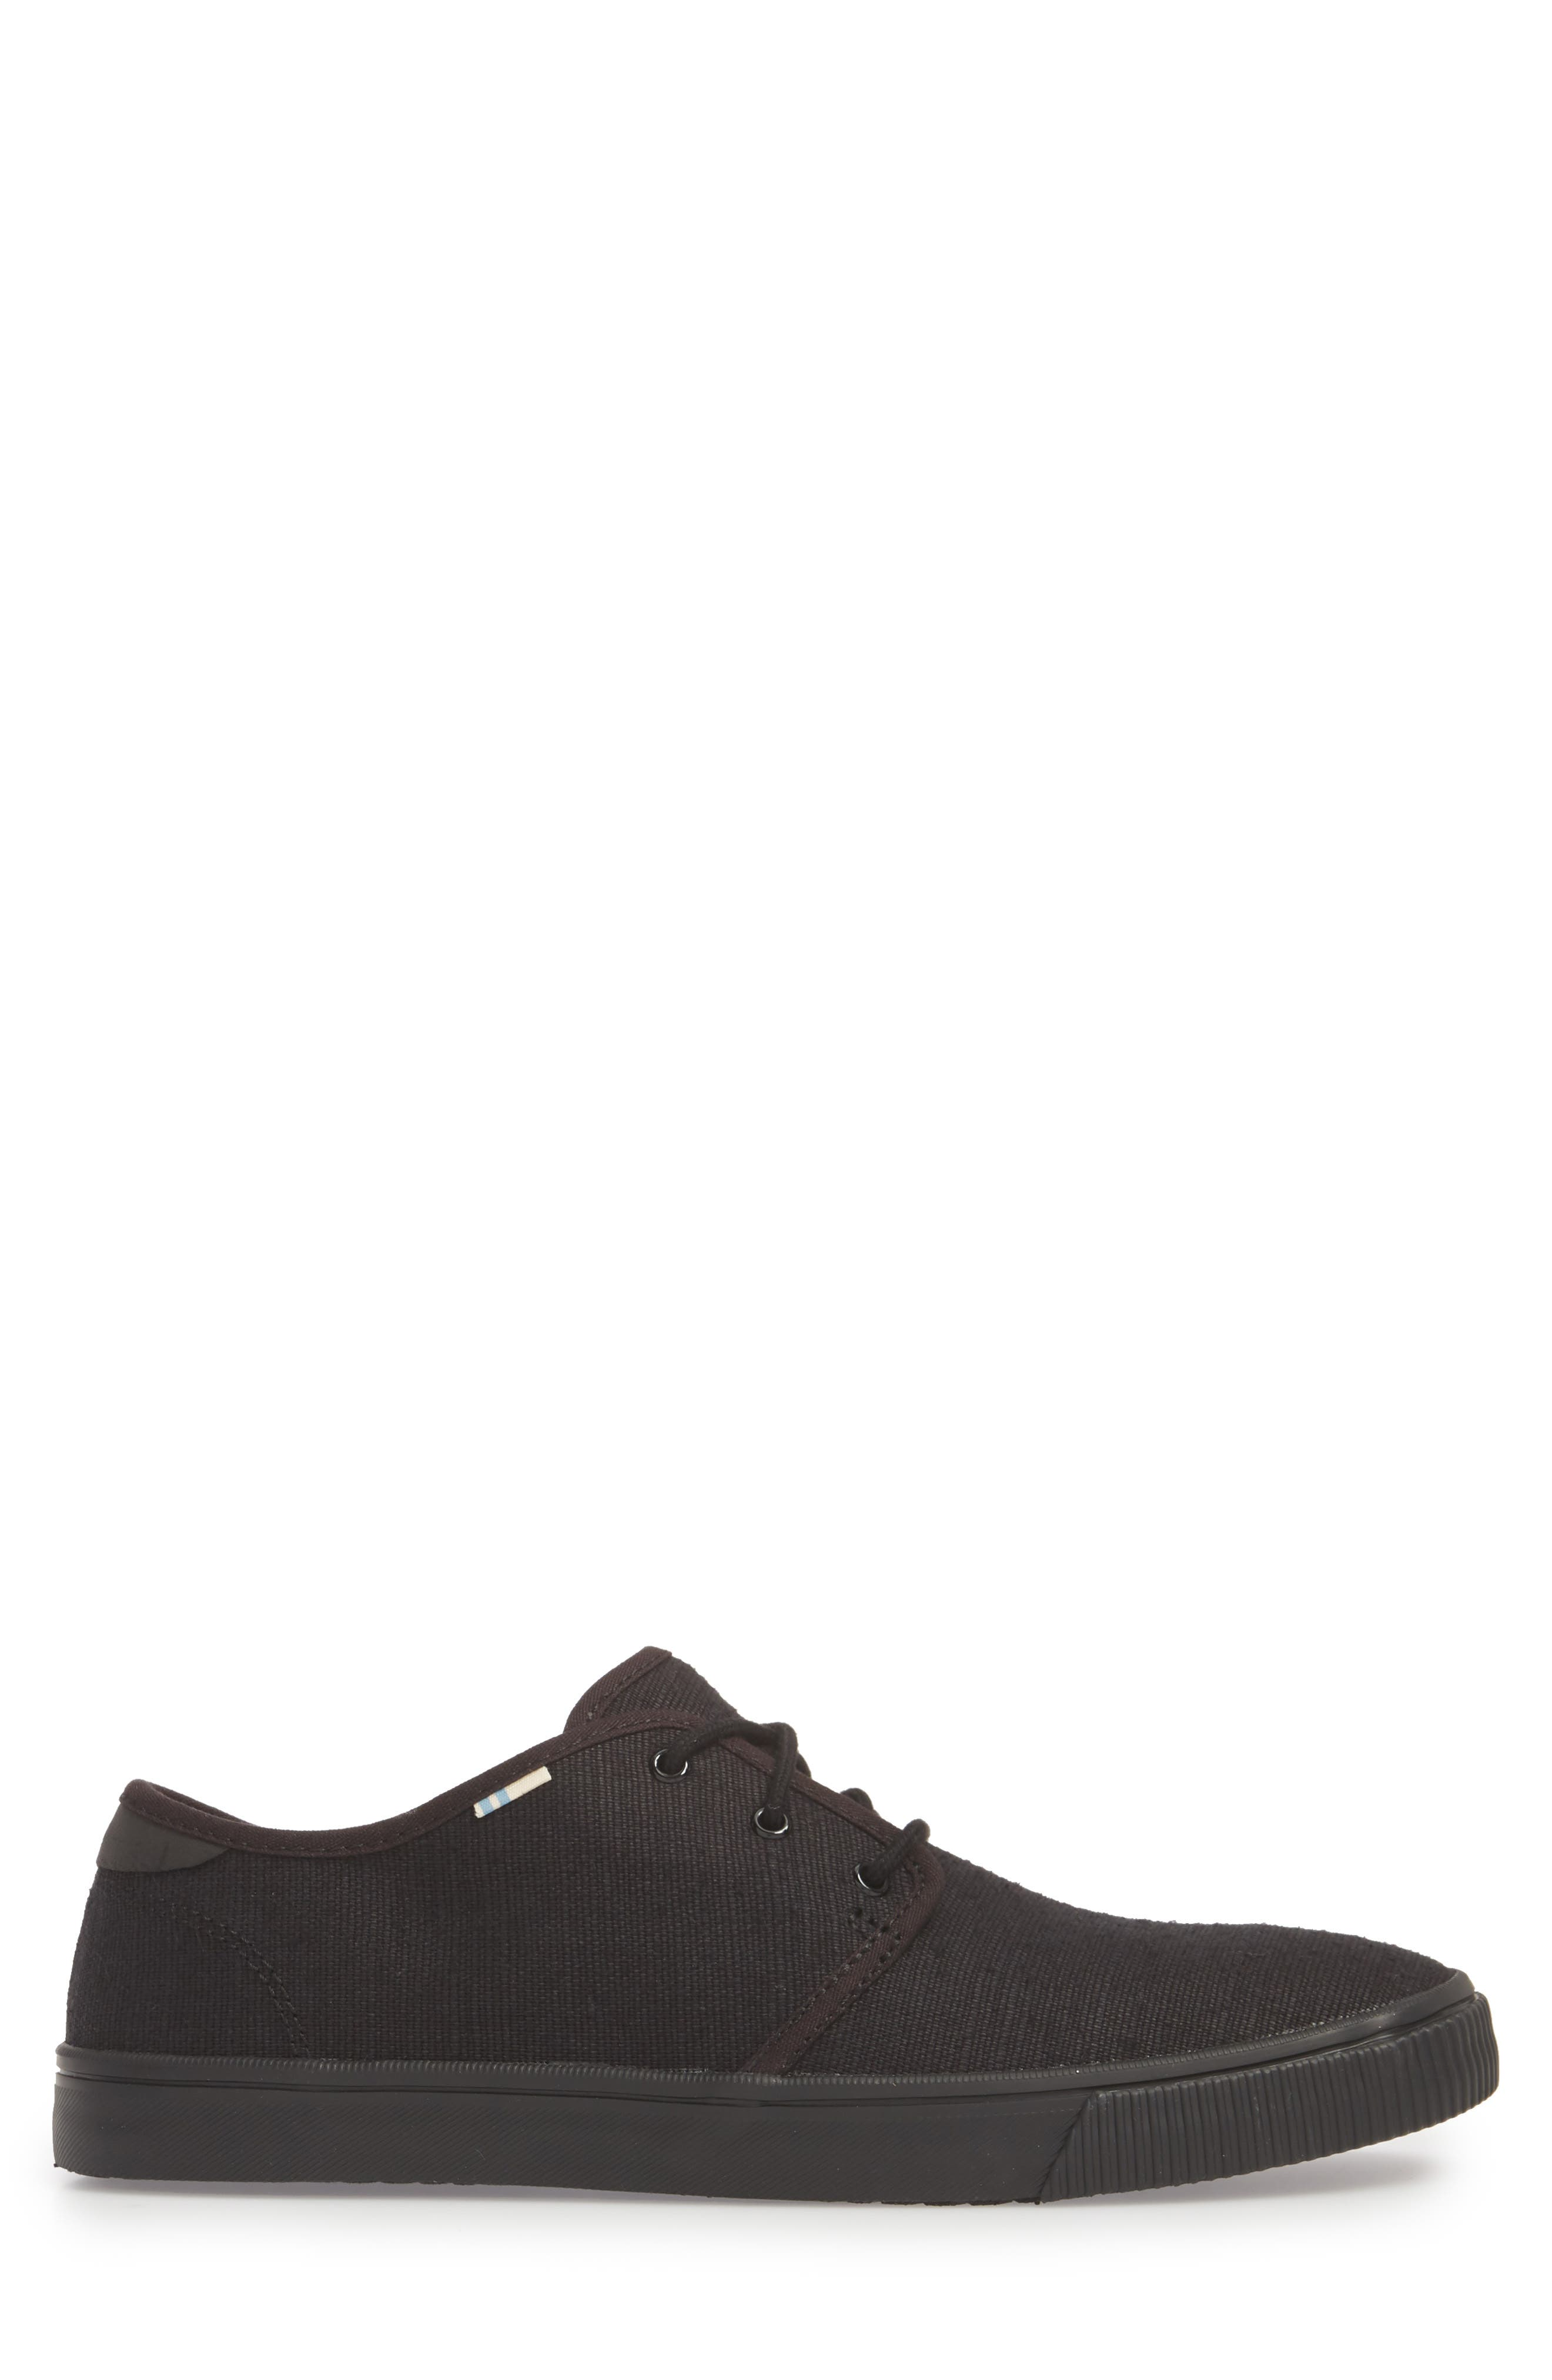 Carlo Low Top Sneaker,                             Alternate thumbnail 3, color,                             BLACK/ BLACK HERITAGE CANVAS